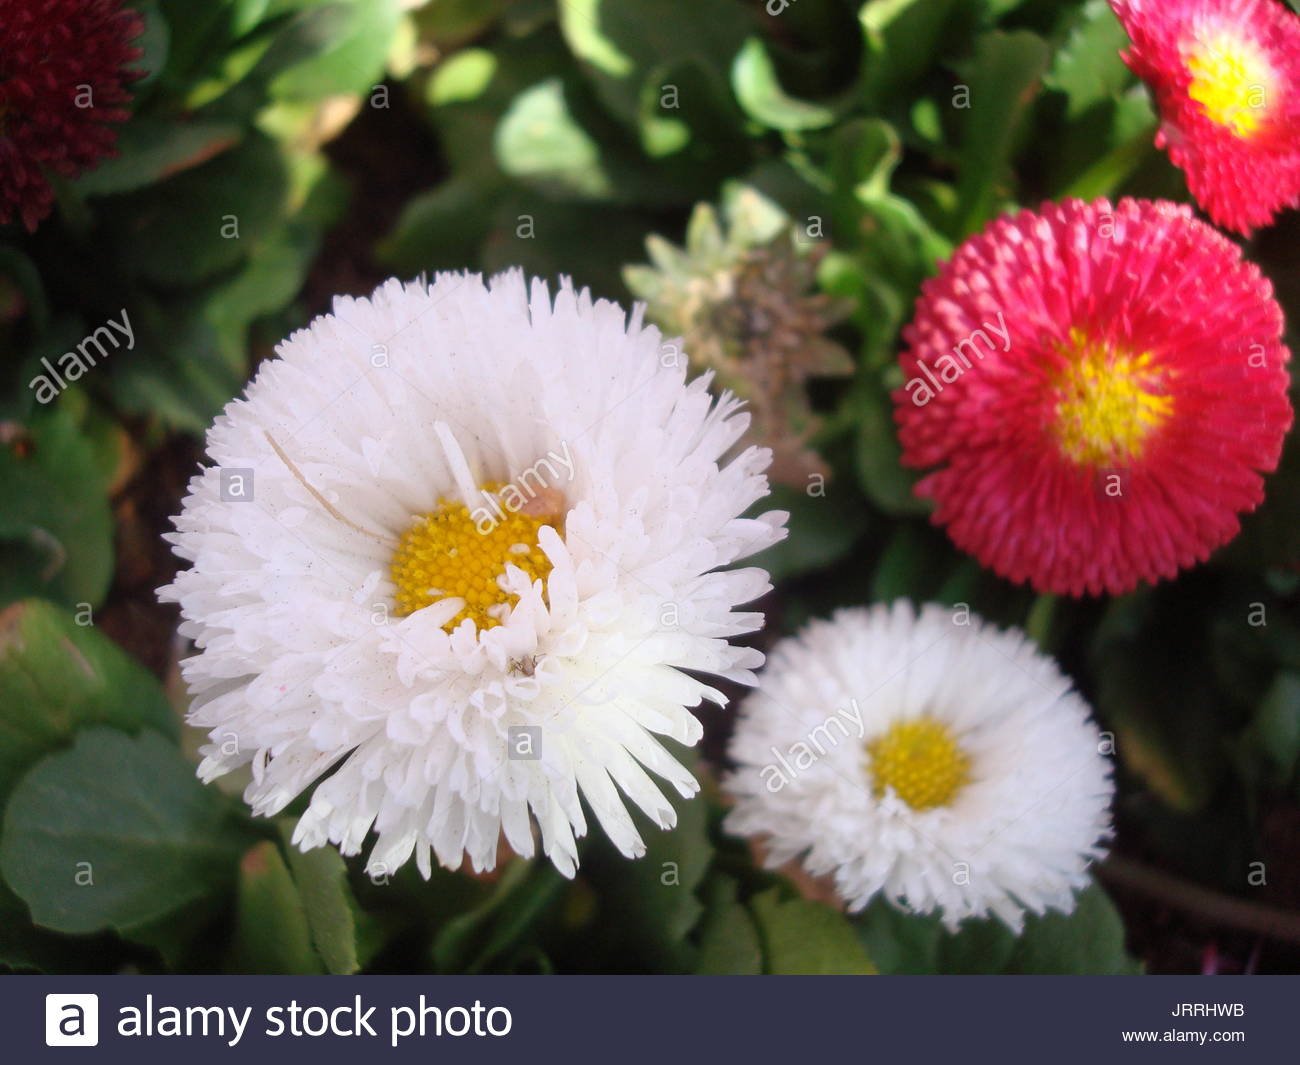 Plants and flowers two colored daisies stock photo 152338967 alamy plants and flowers two colored daisies izmirmasajfo